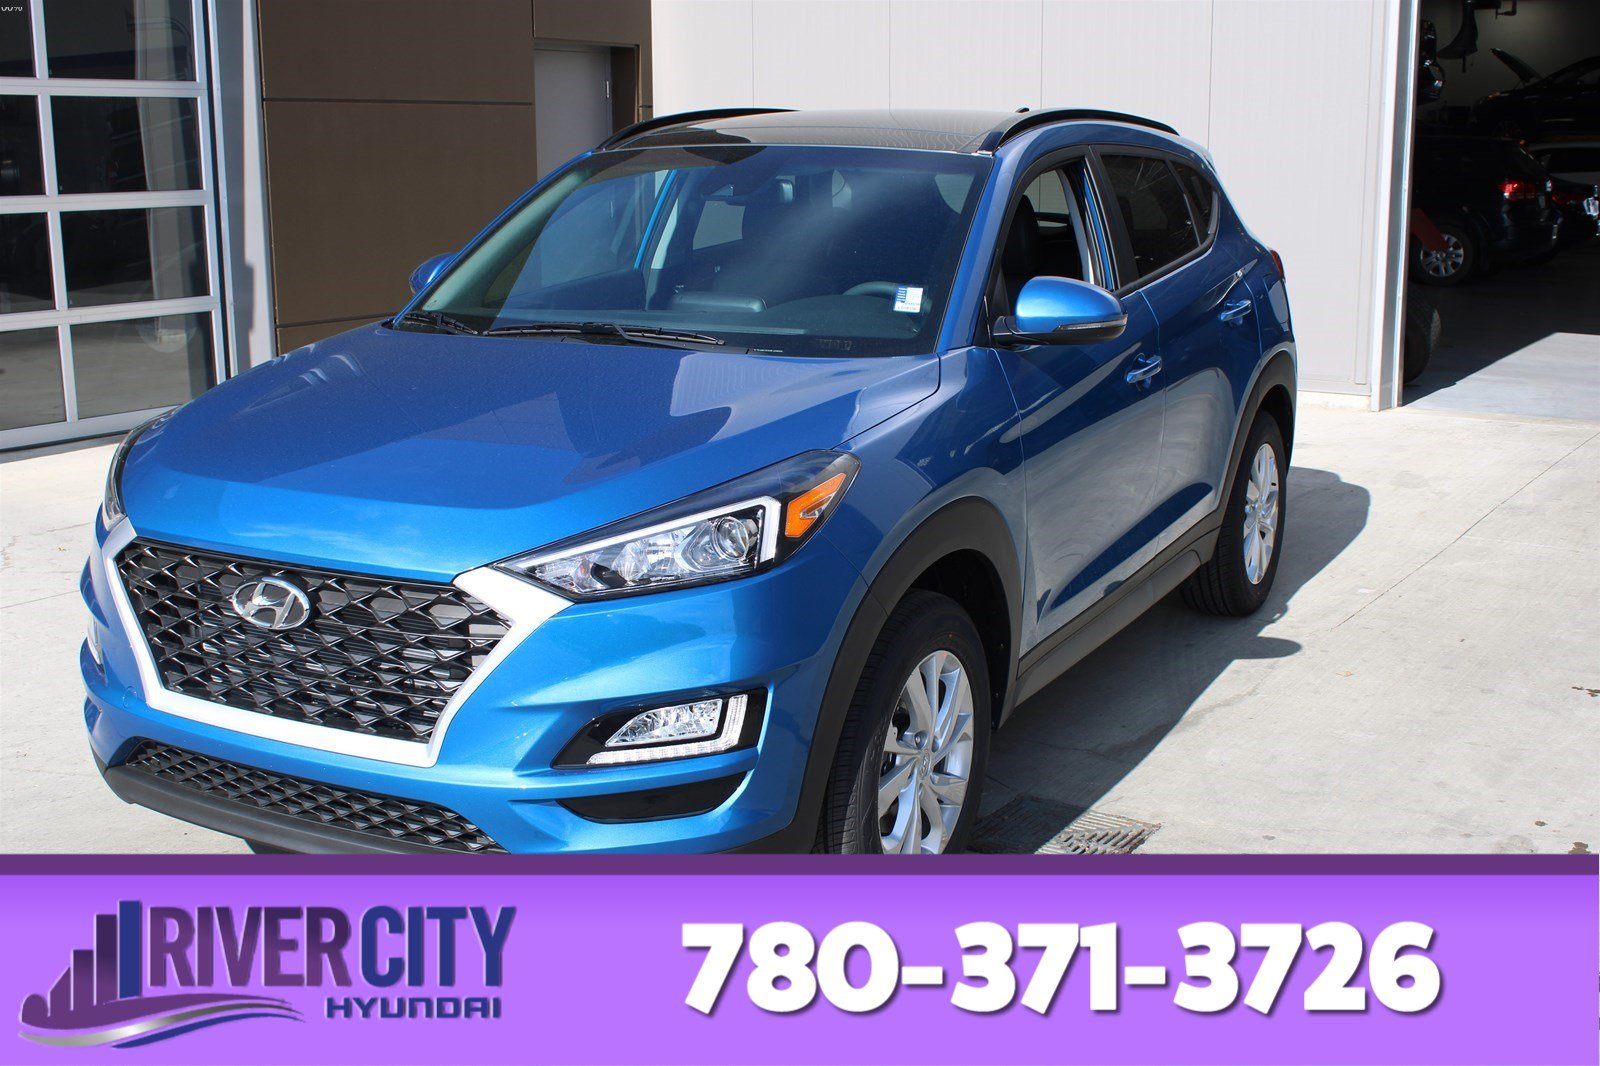 New 2020 Hyundai Tucson PREFERRED AWD HEATED STEERING,LEATHER AND SUN ROOF,BLUETOOTH,BLIND SPOT MONITOR